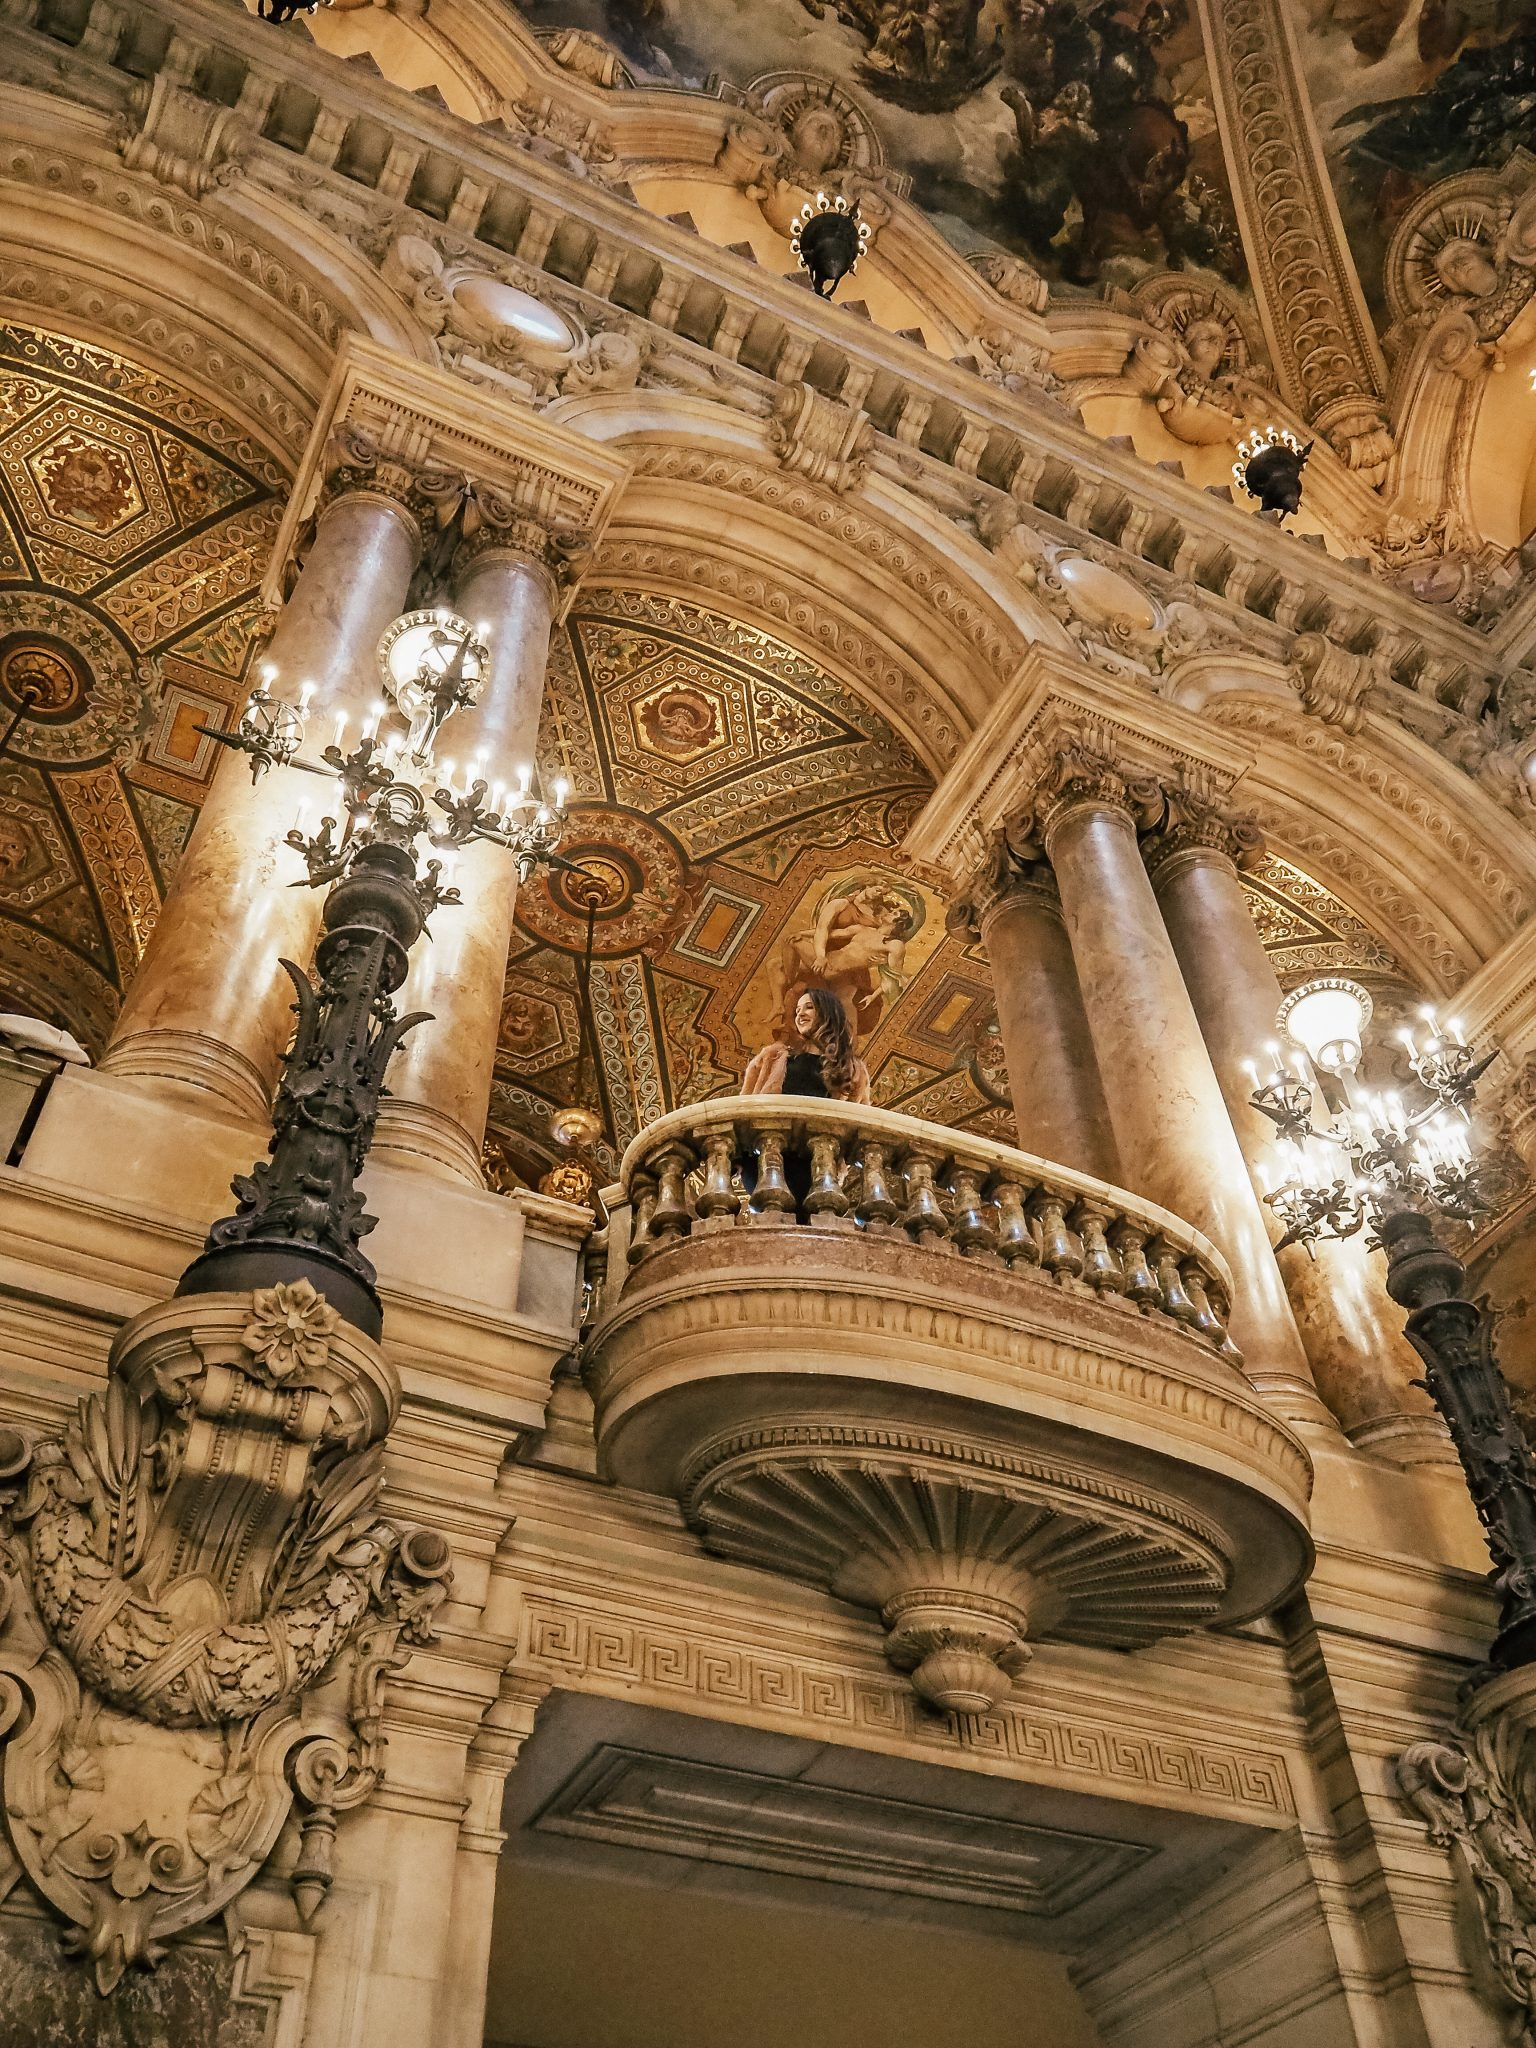 12 Best Photo Spots in Paris For Epic Instagram Shots - Palais Garnier